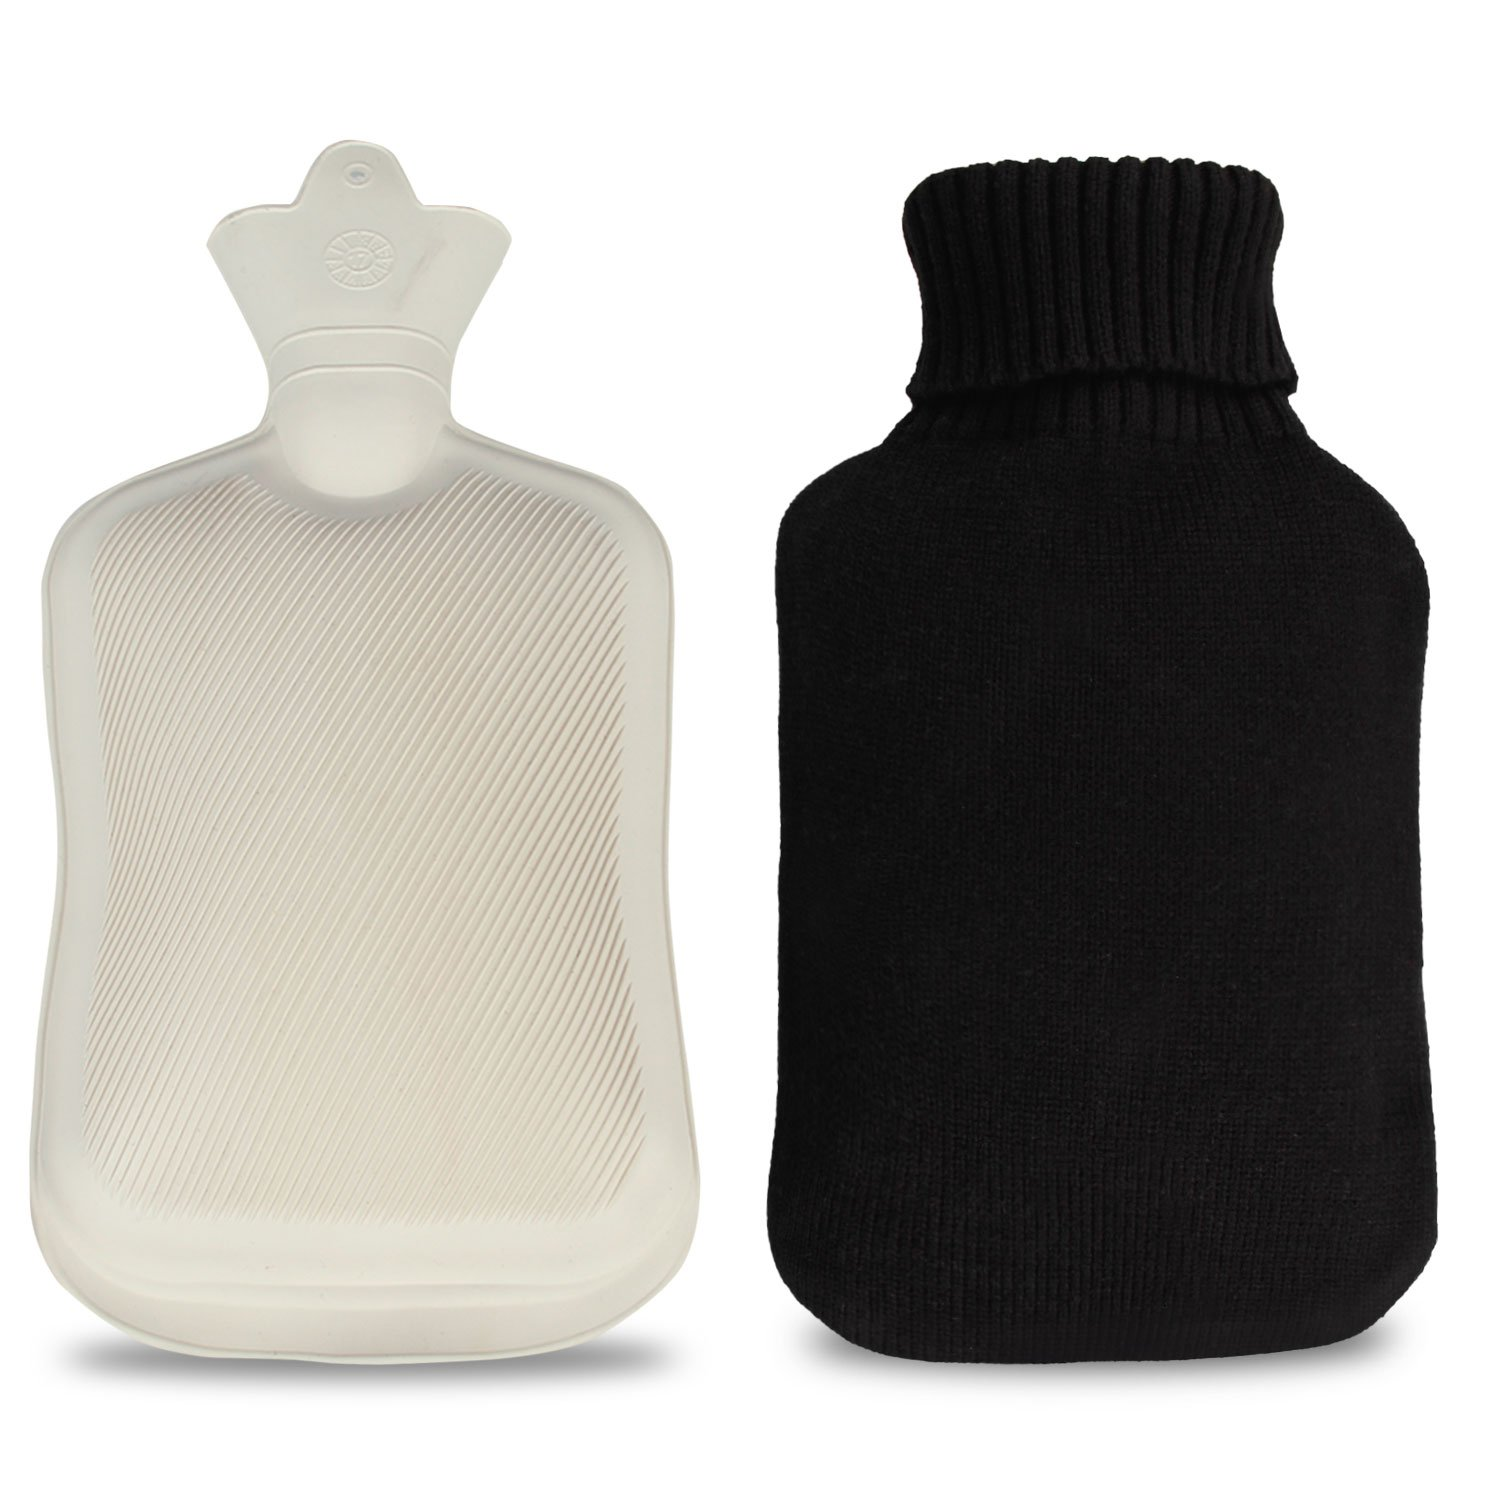 Infreecs Hot Water Bottle with Knitted Removable Cover 2L - Black